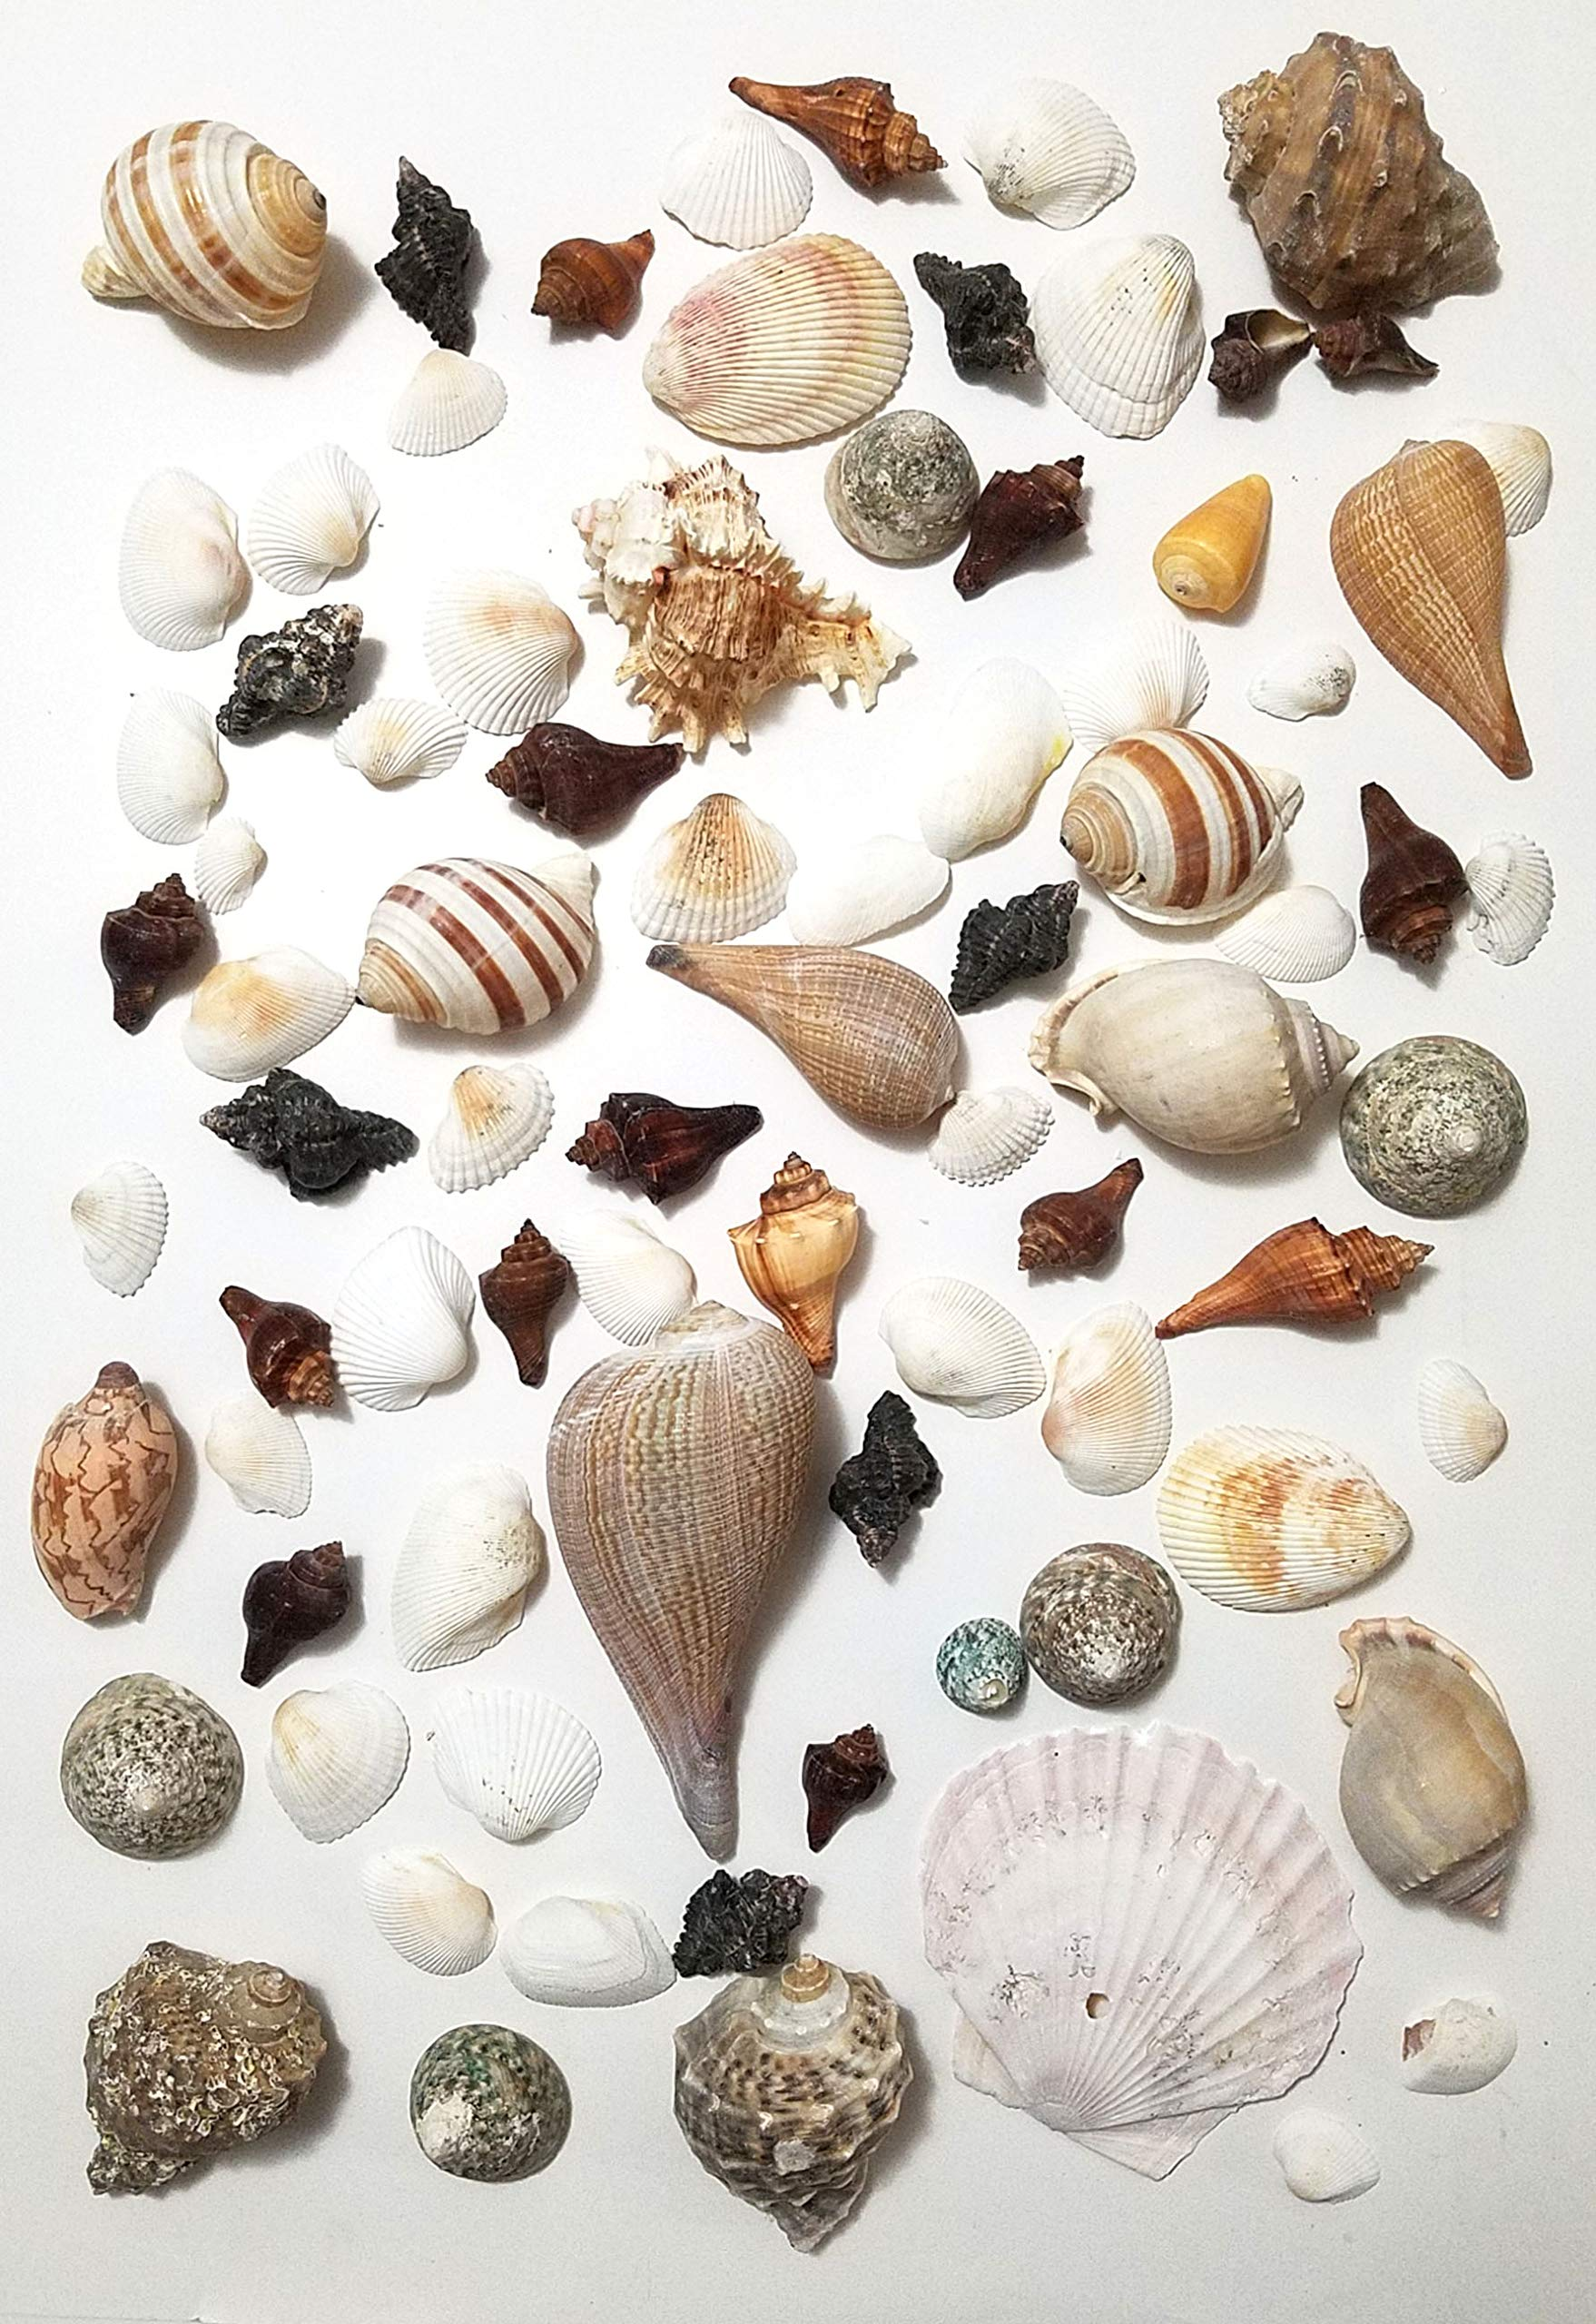 3 lbs/ 1360 Grams Large Mixed Beach Natural Sea Shells, Perfect Accents for Candle Making,Home Decorations, Beach Theme Party Wedding Decor, DIY Crafts, Fish Tank and Vase Fillers